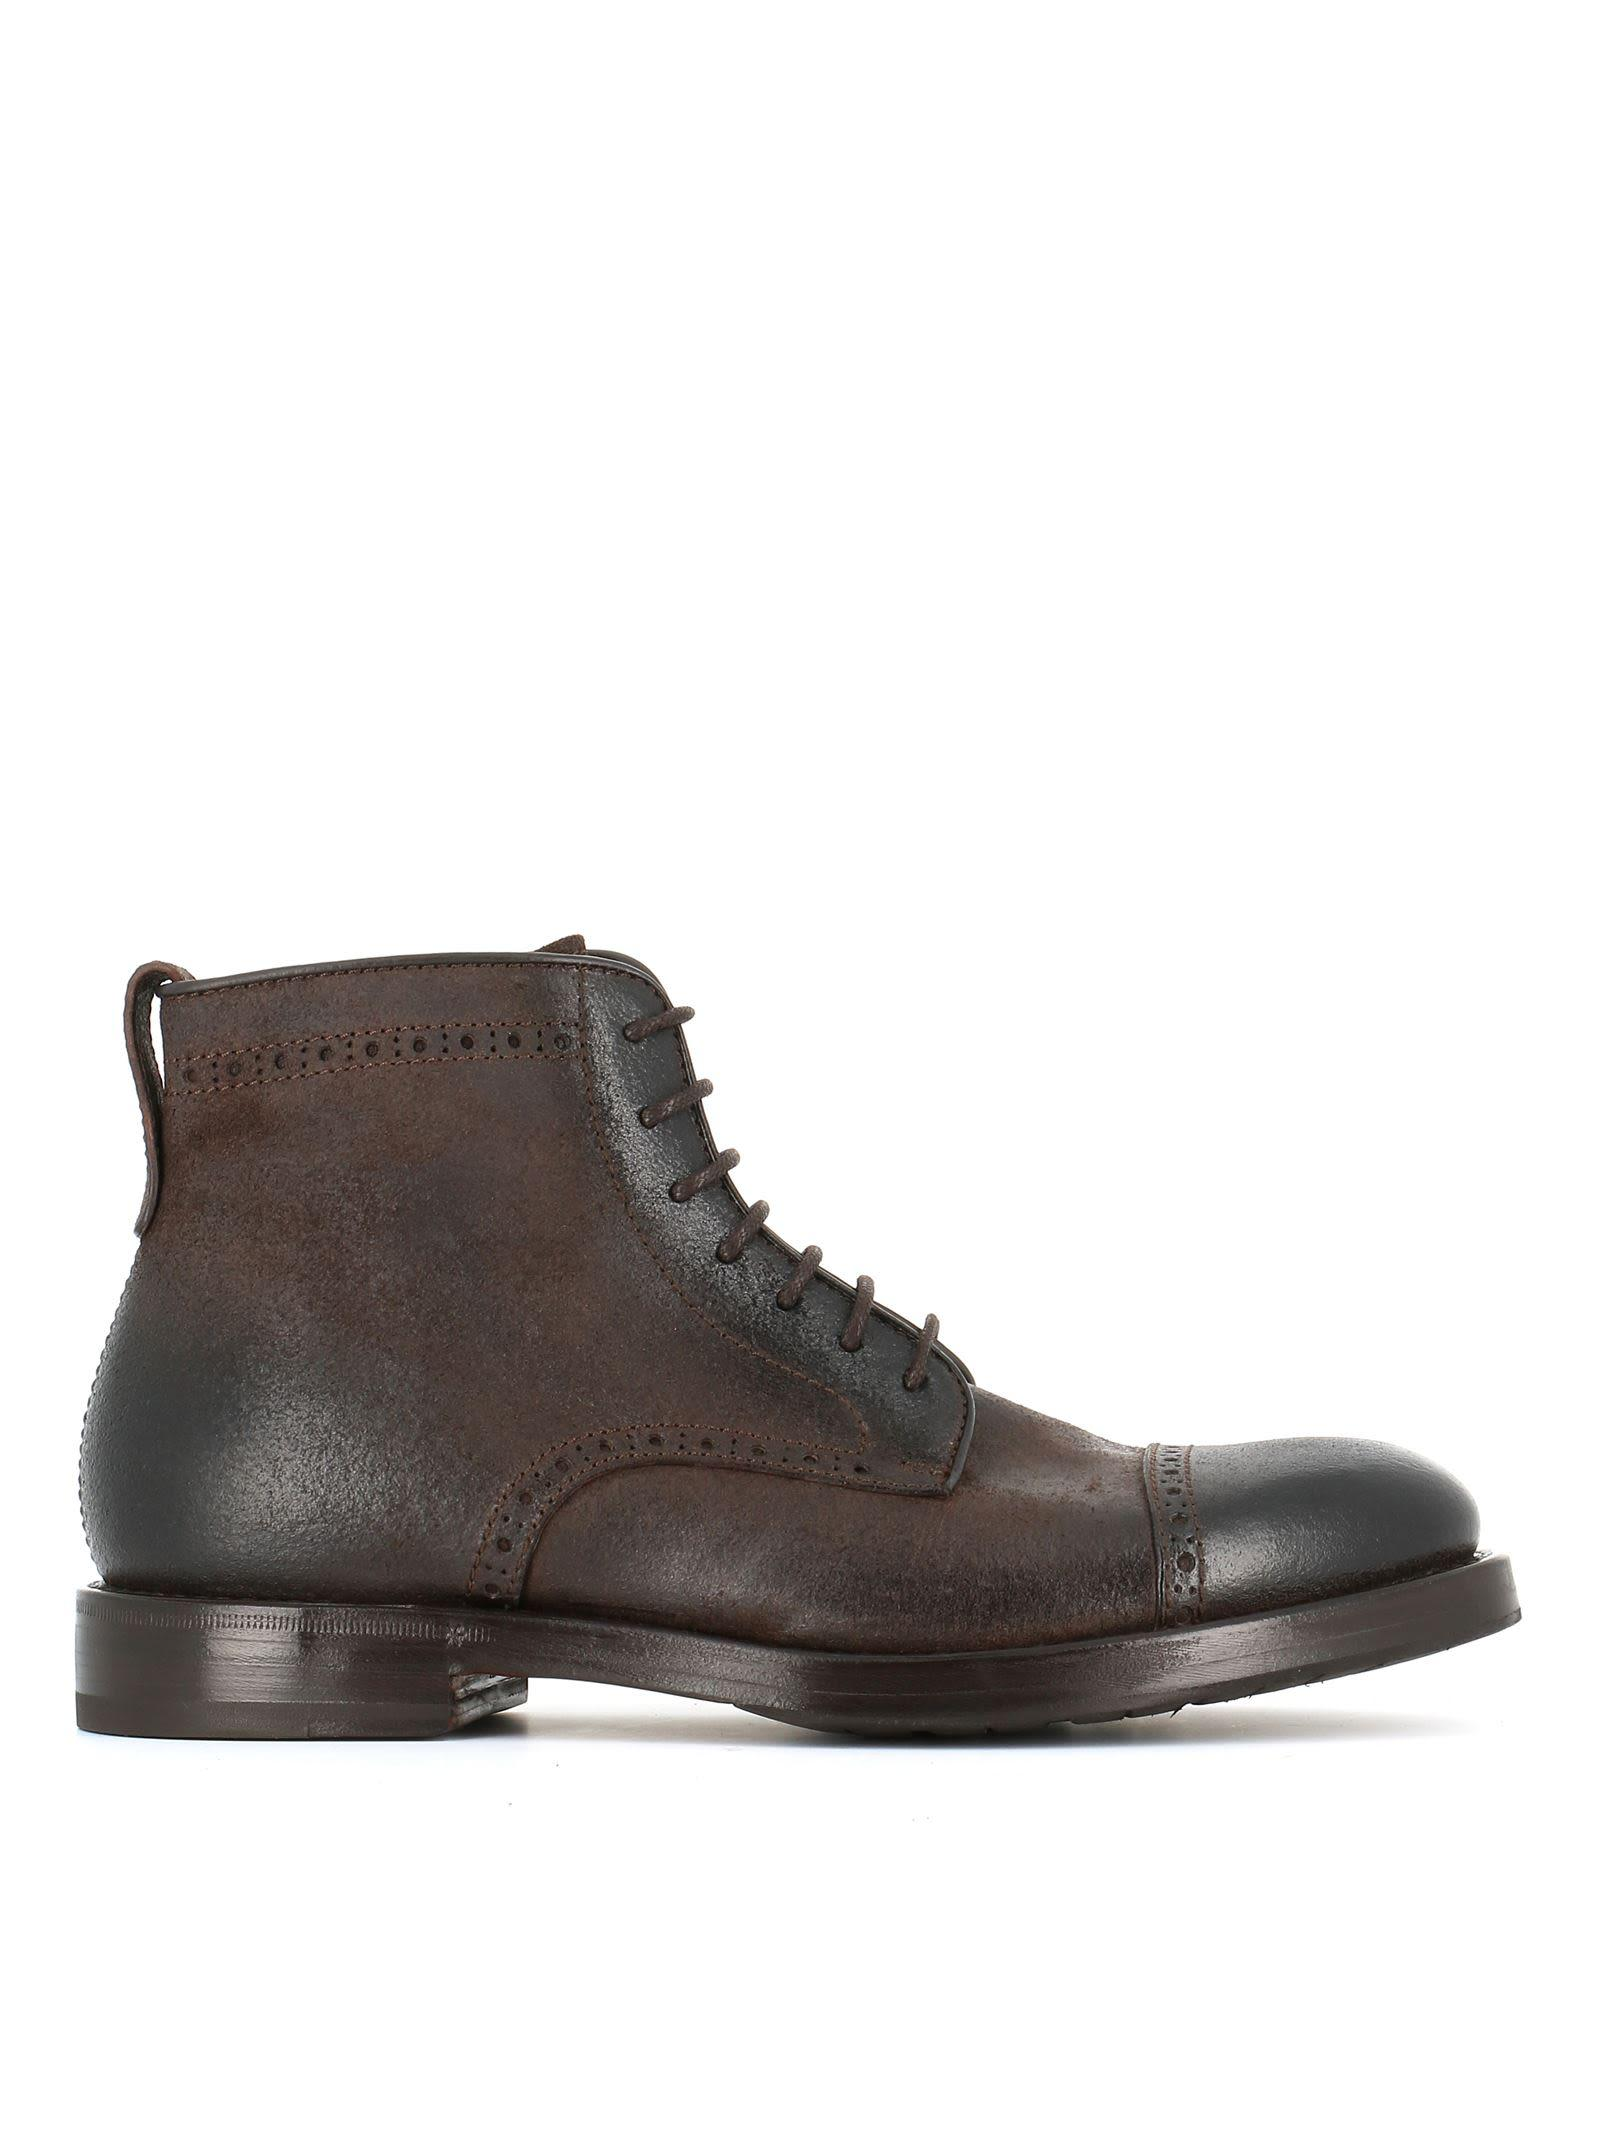 Henderson 57501 Lace-up Boots In Brown